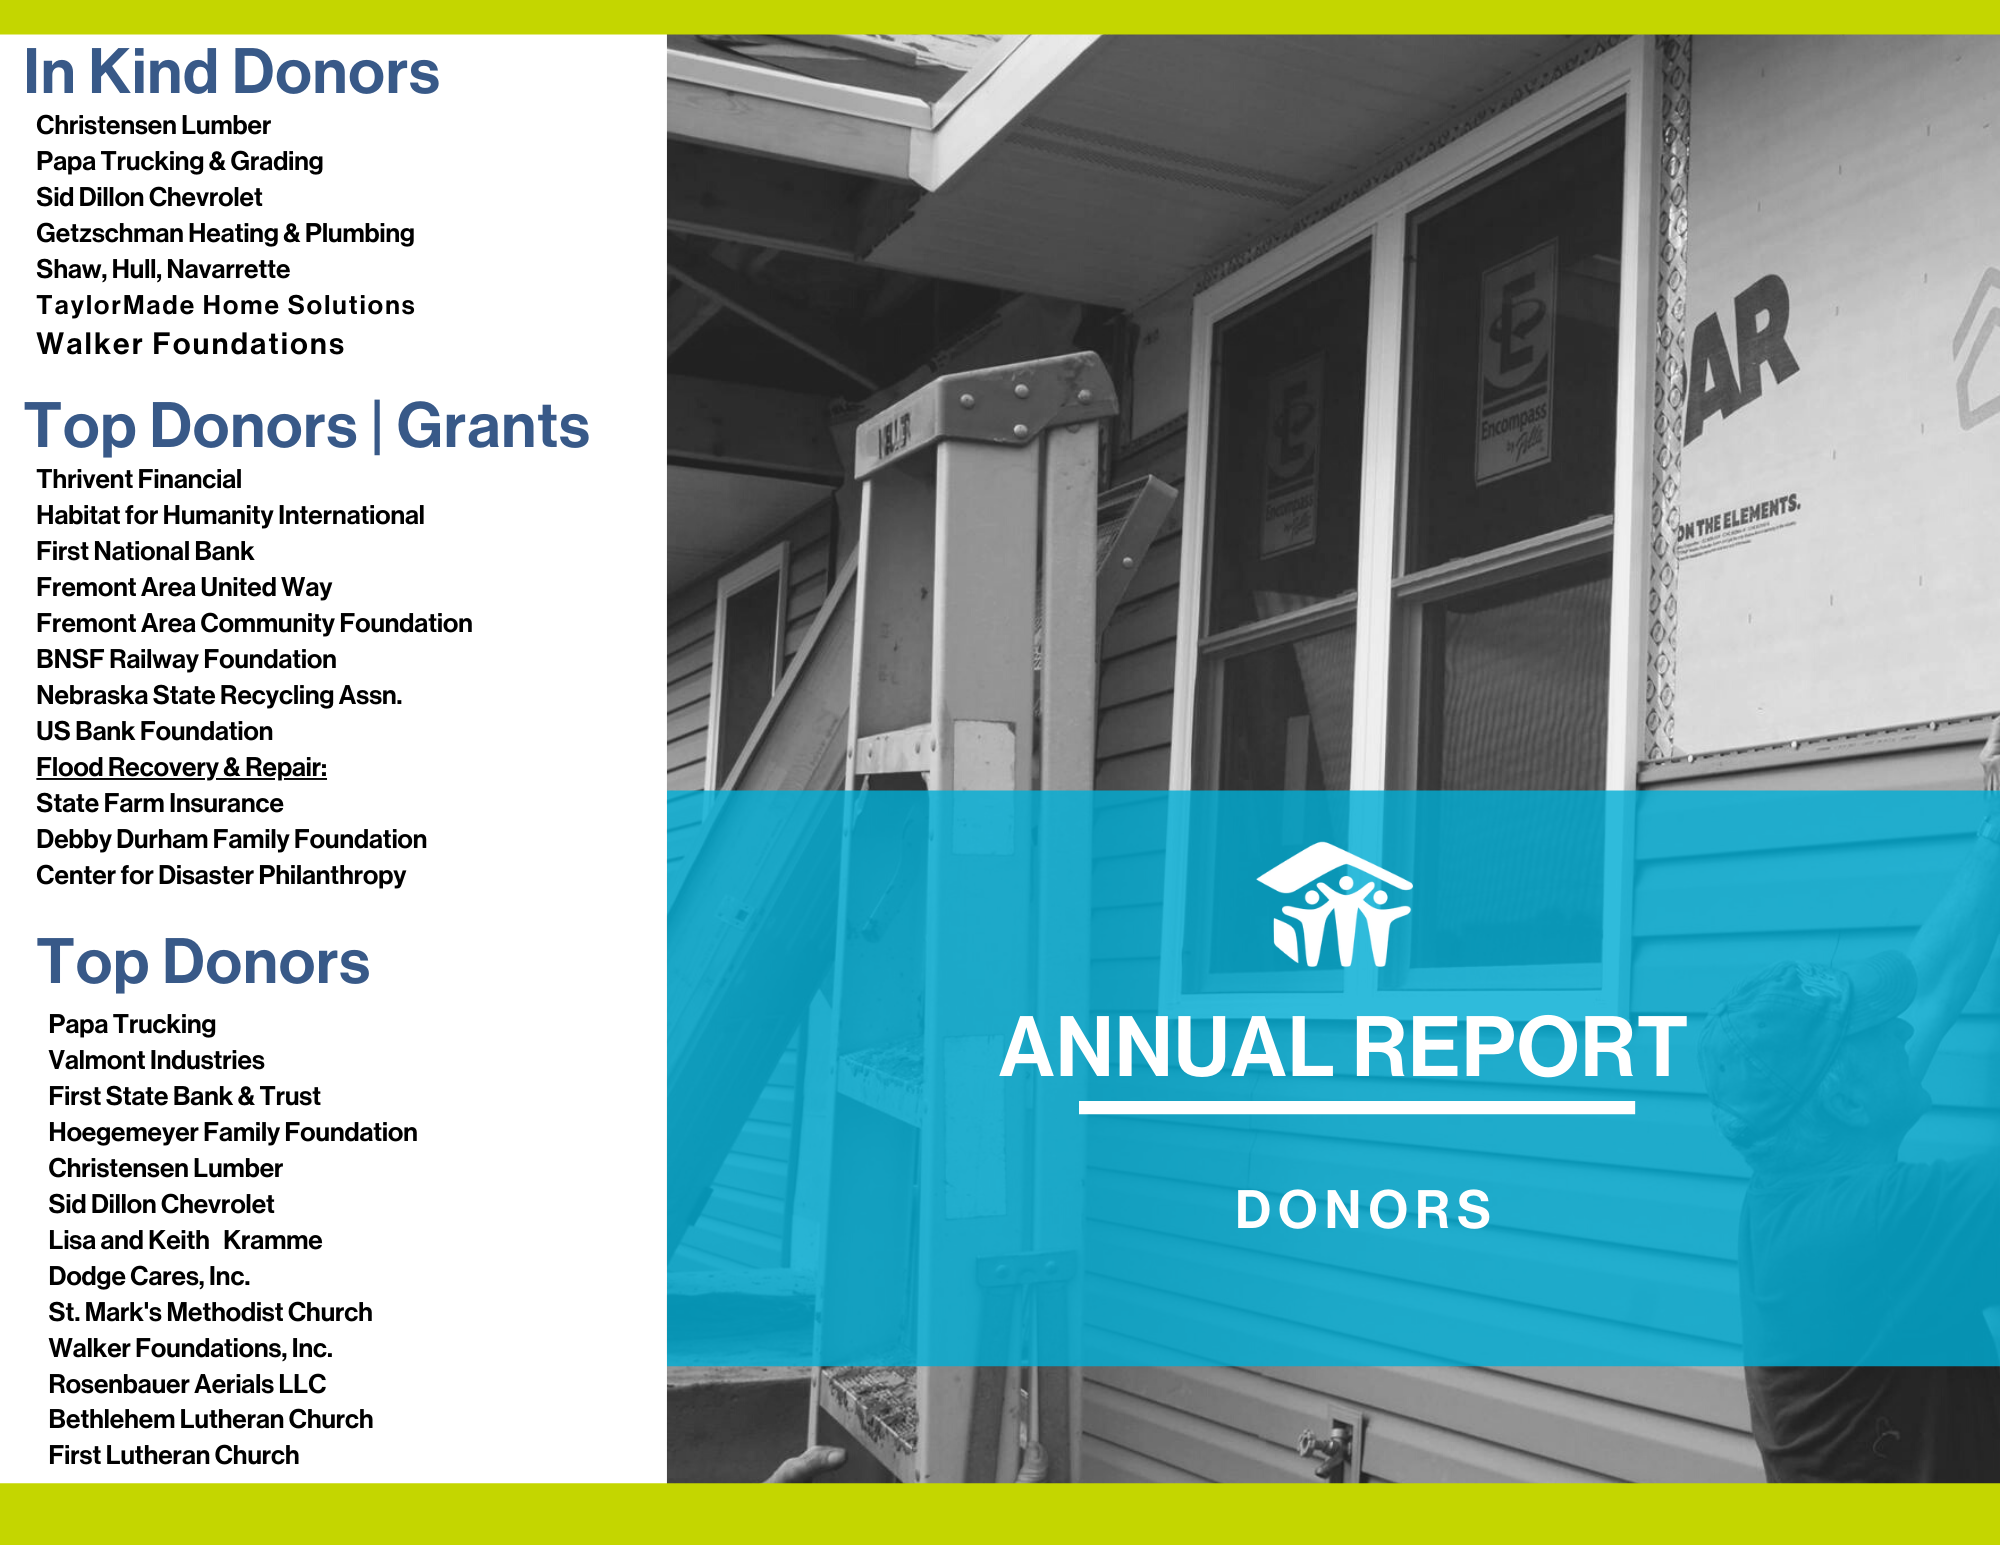 2019 Annual Report - Donors